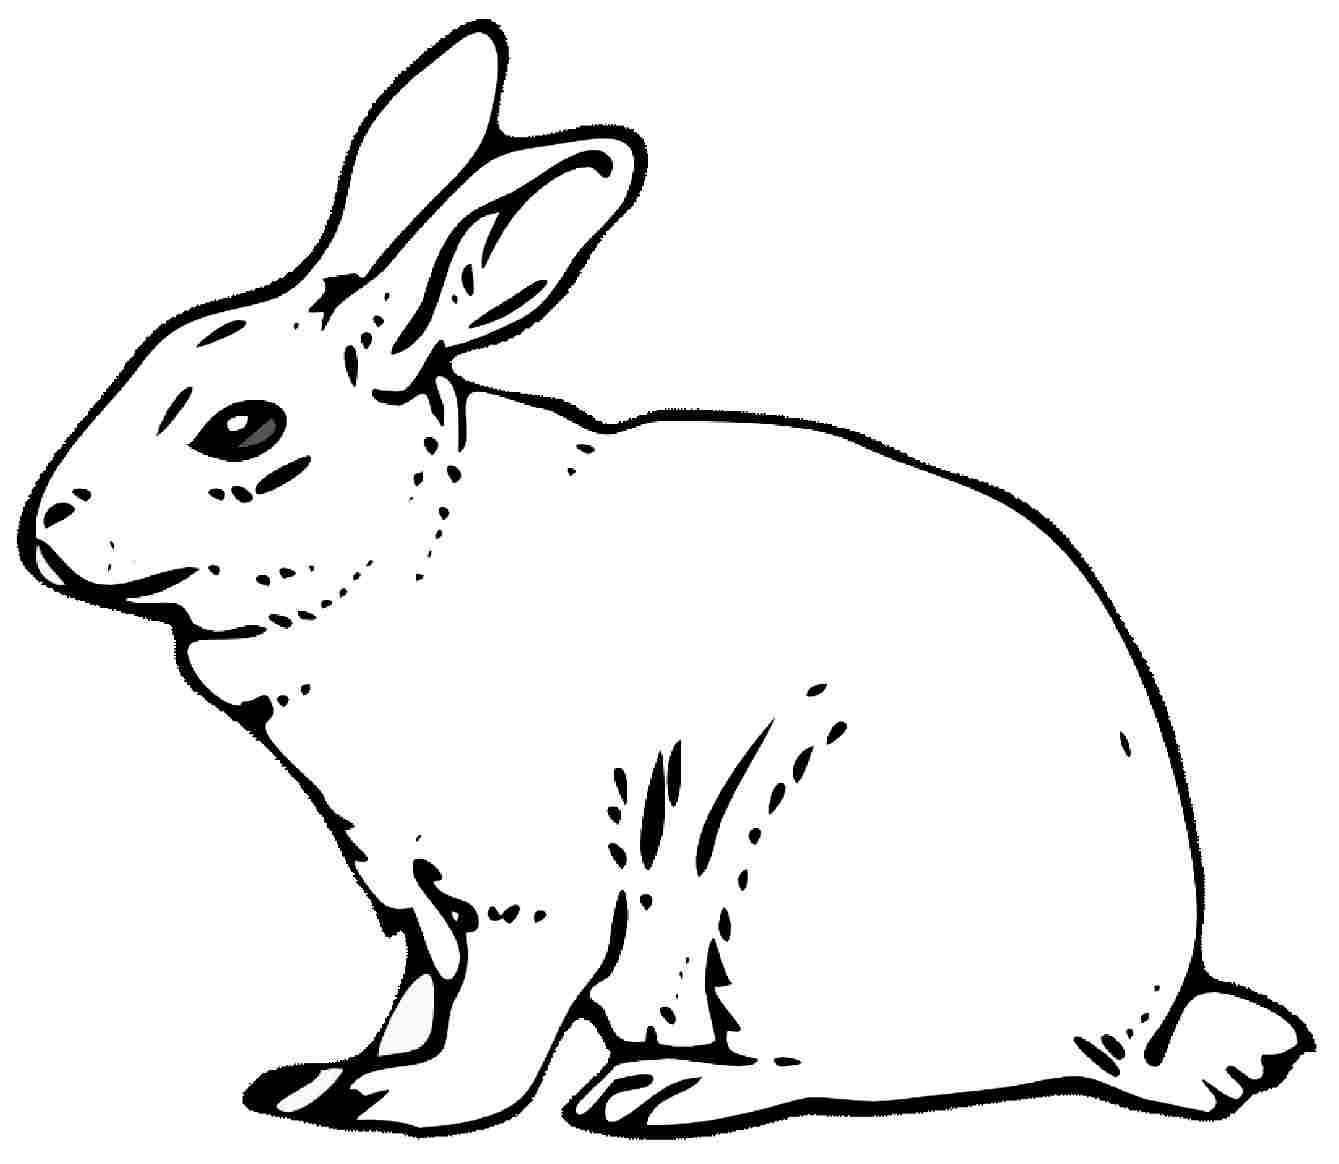 Remarkable Realistic Bunny Coloring Pages Rabb Unknown Download Of Remarkable Realistic Bunny Coloring Pages Rabb Unknown Download